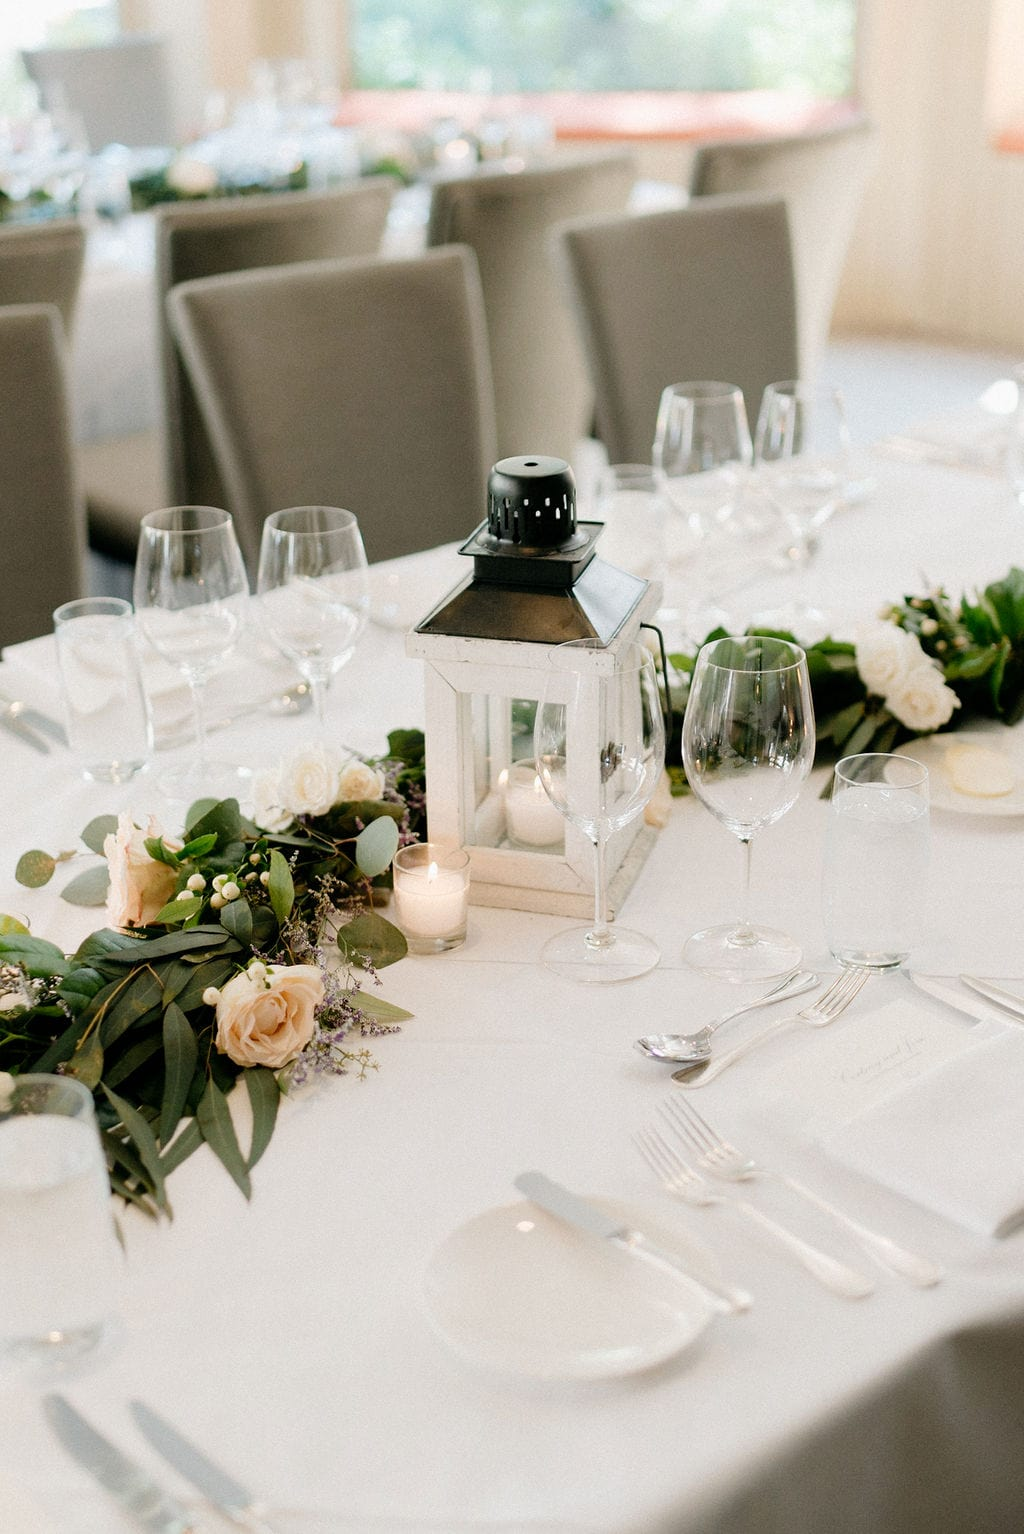 Wedding Reception details at the Little Nell